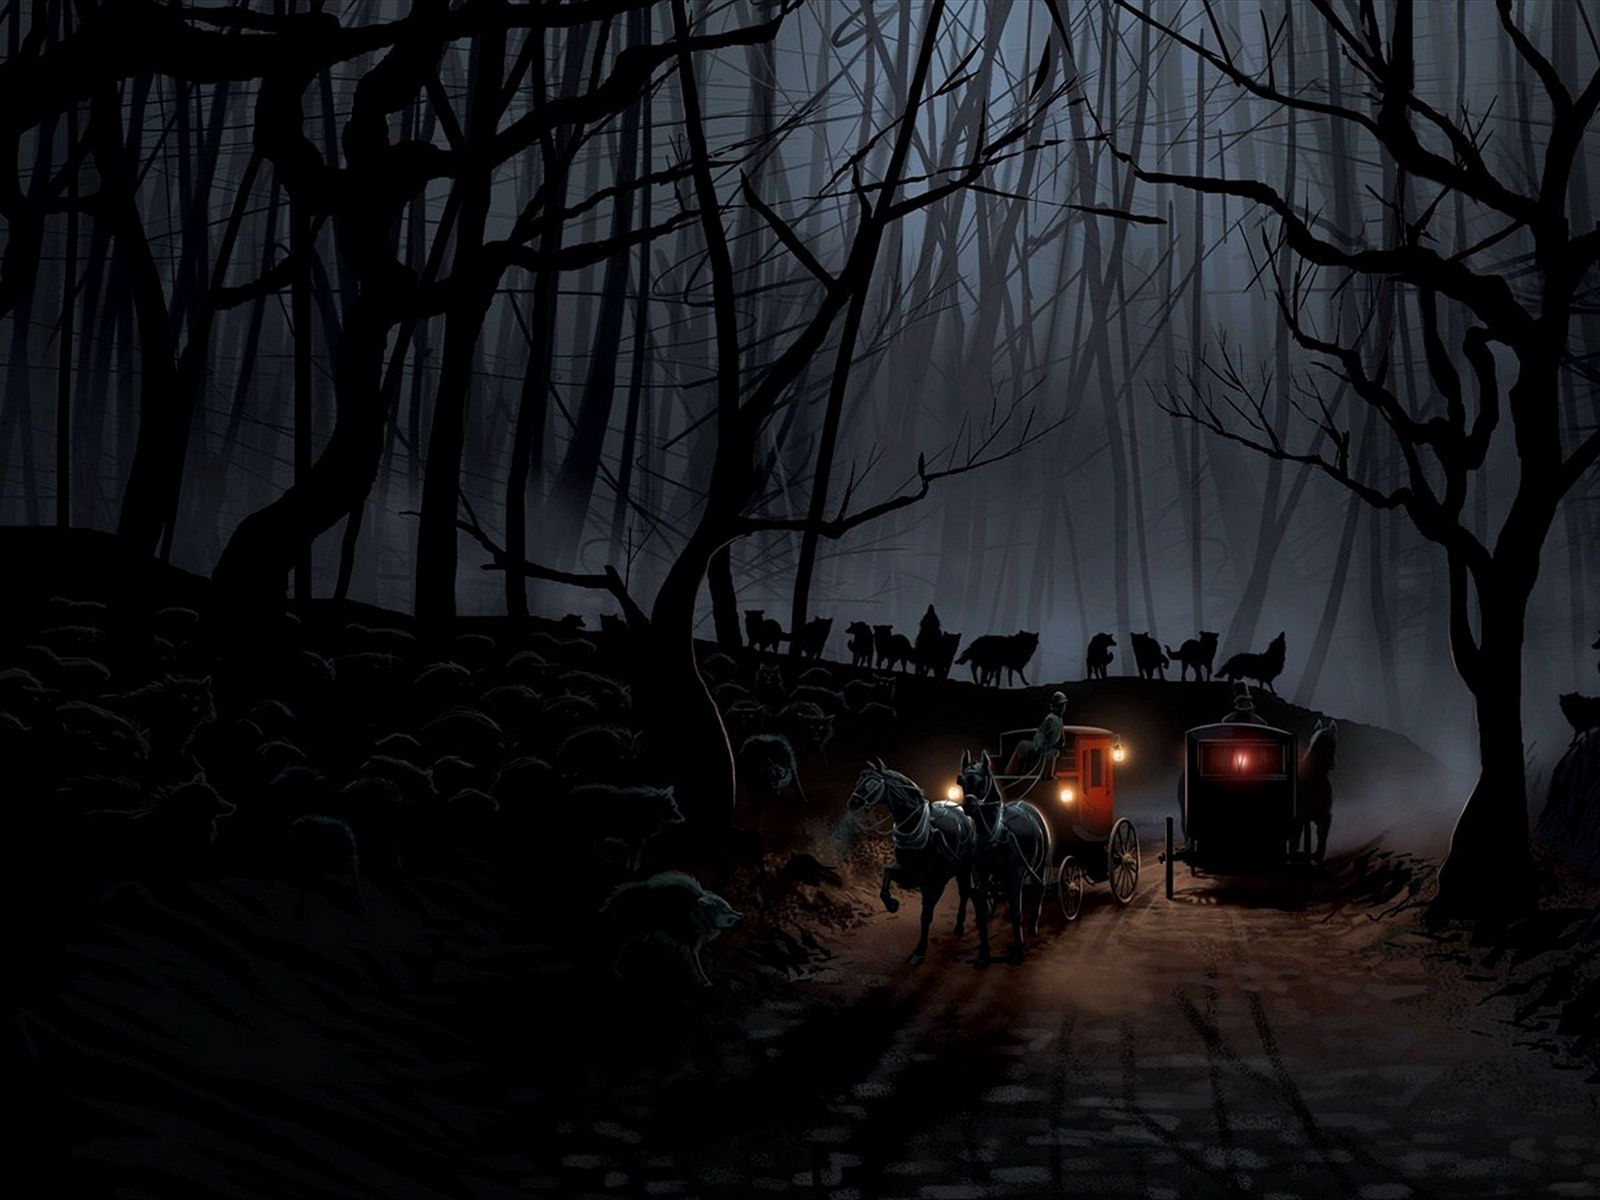 1600x1200 Wallpaper carriage, wood, night, wolves, flight